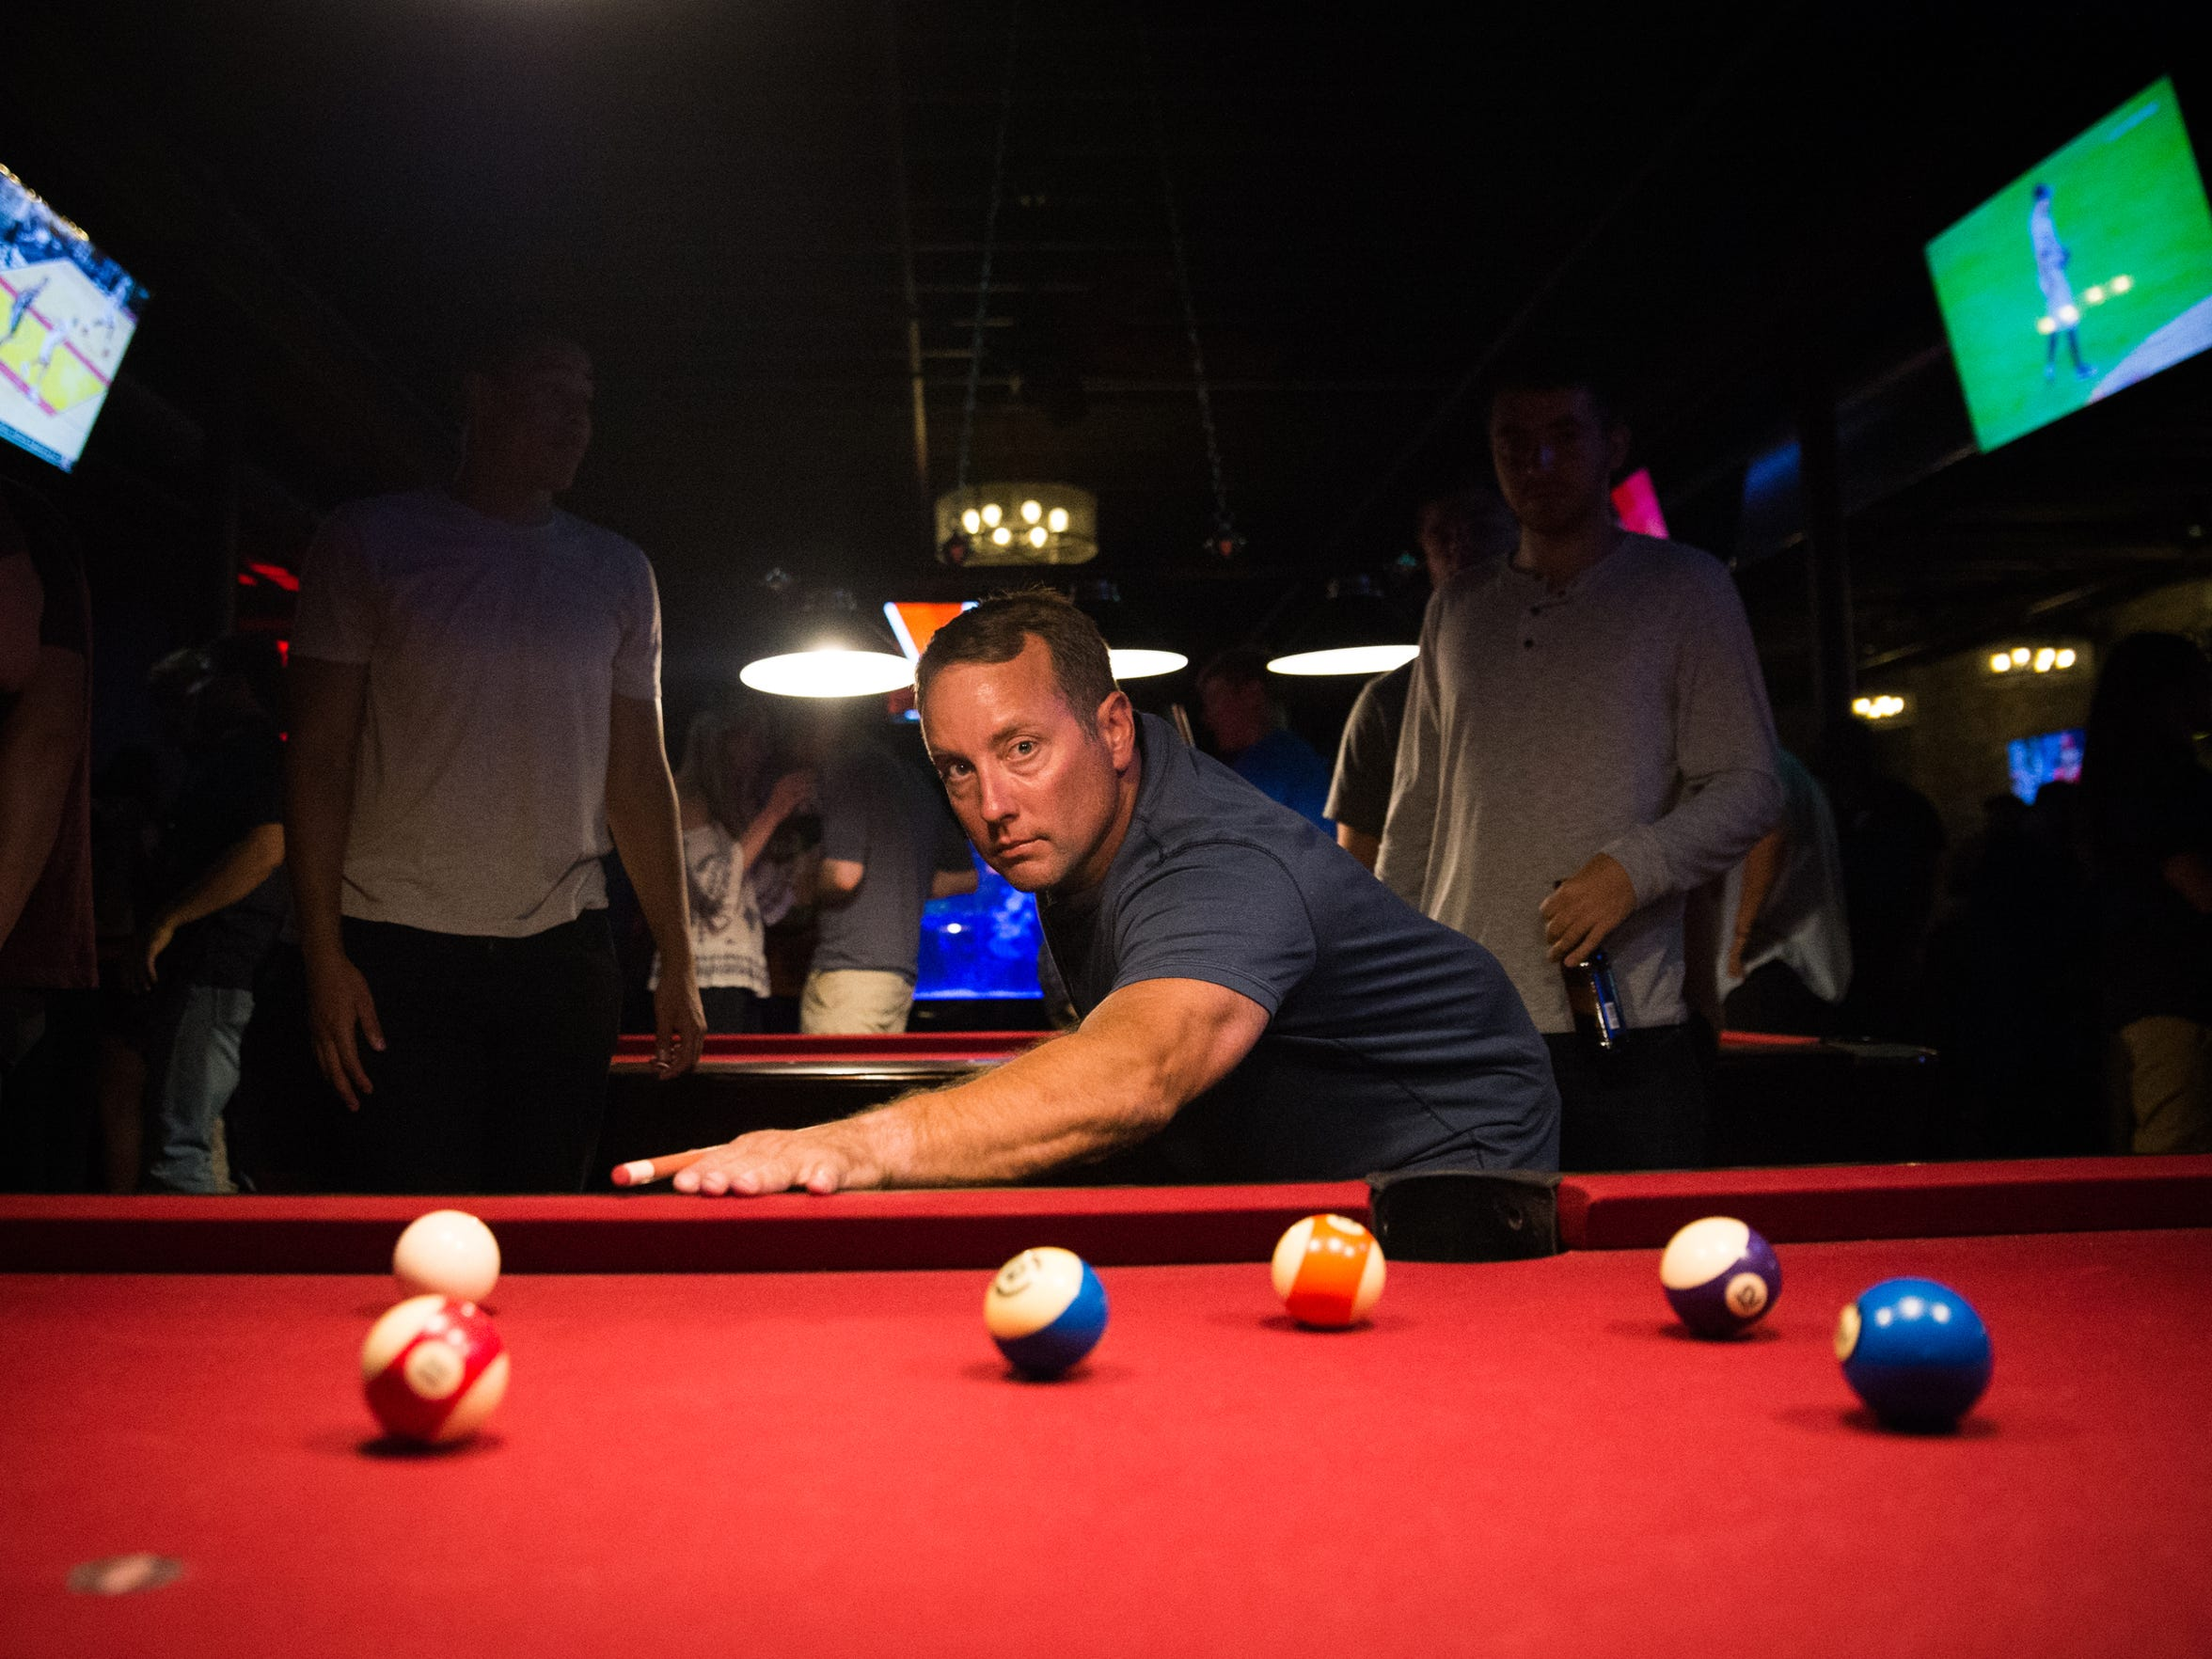 Dan Johnson of New Baltimore plays pool at the Fifth Avenue nightclub in Royal Oak, Mich. on Friday, July 20, 2018.